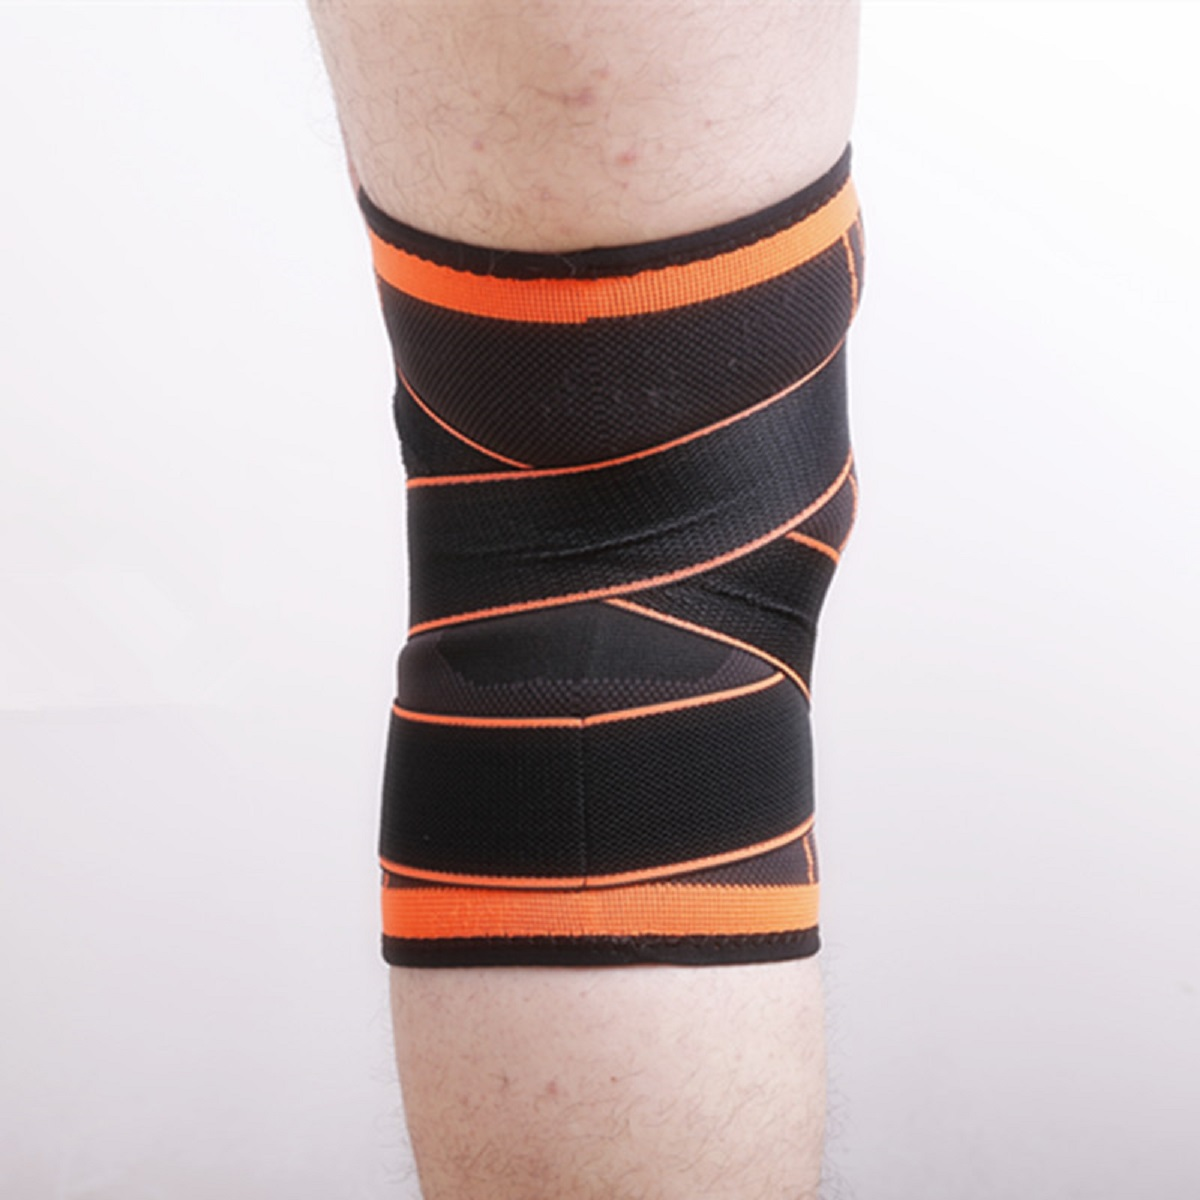 USA-3D-Weaving-Knee-Brace-Breathable-Sleeve-Support-for-Running-Jogging-Sports miniature 22